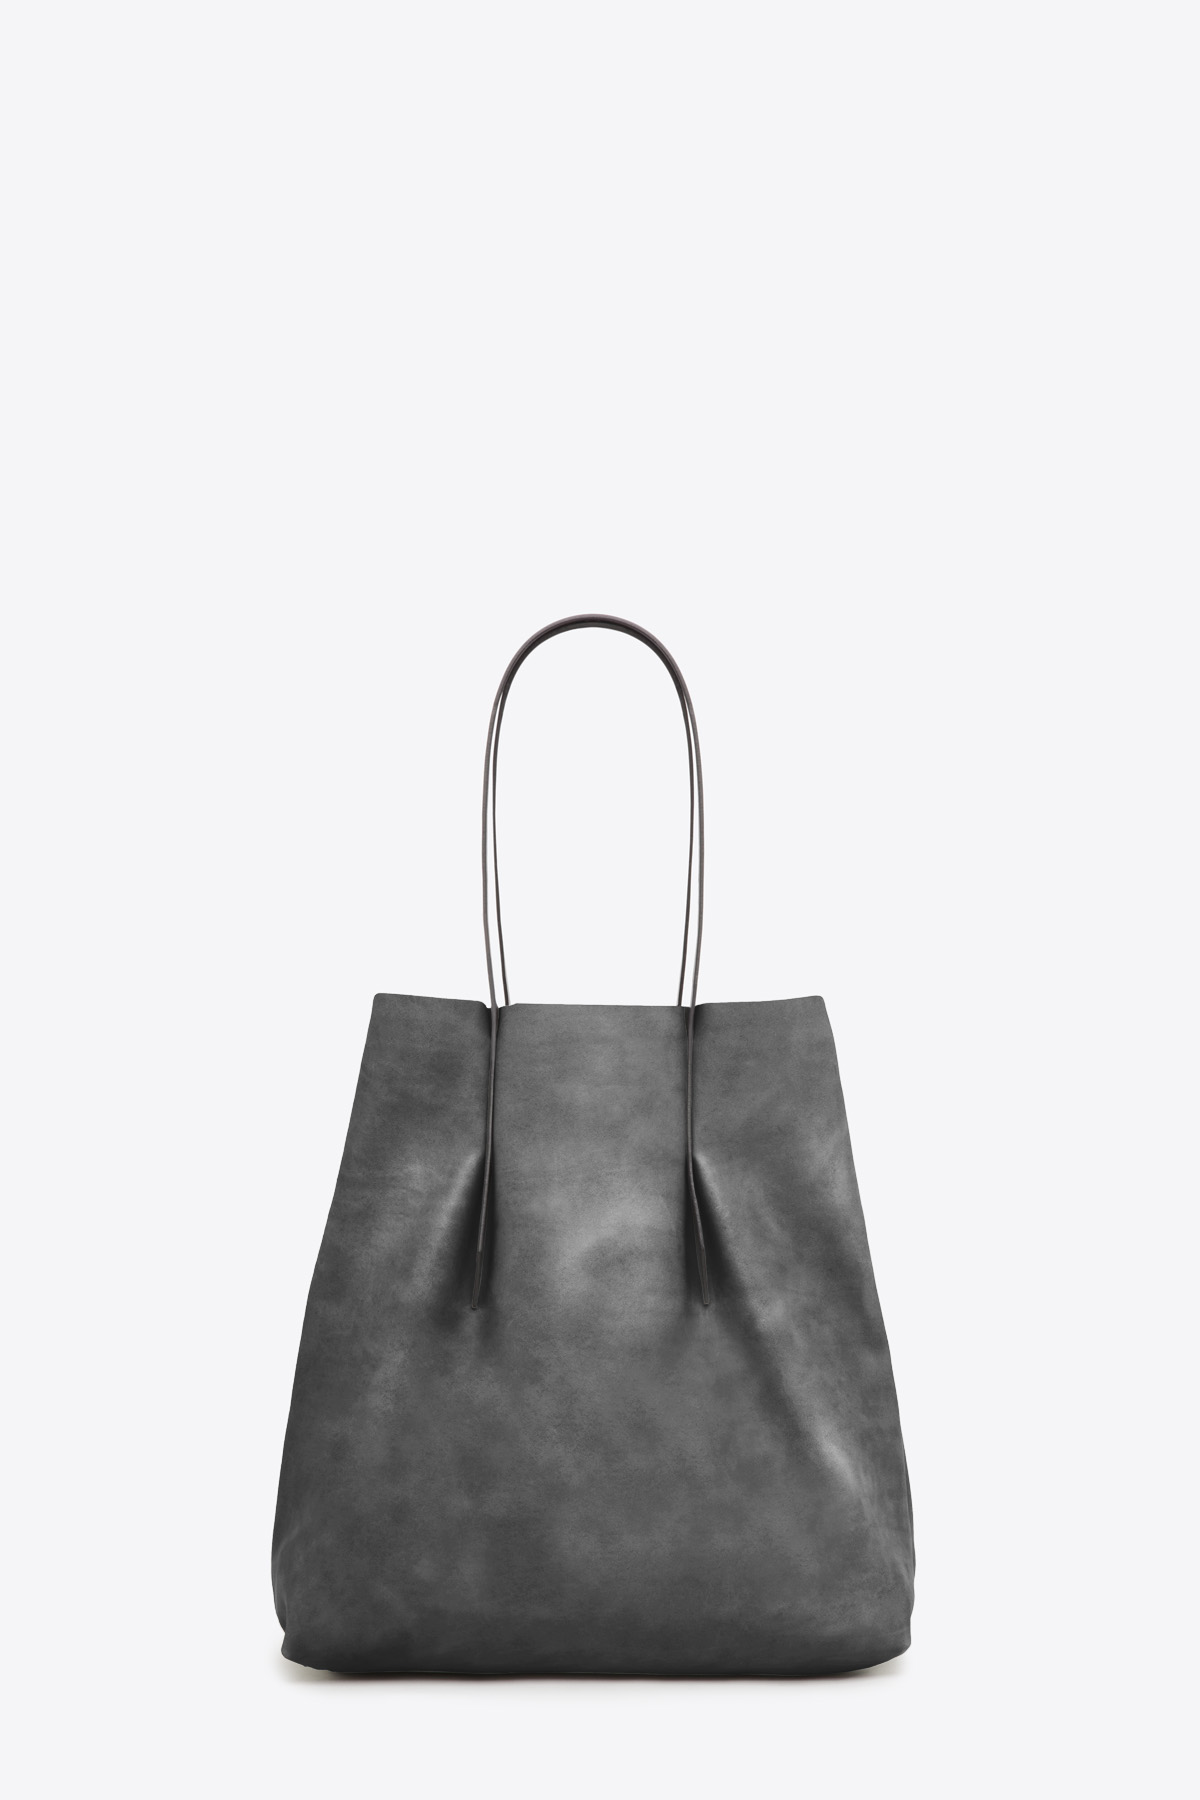 dclr006-shoppingbag-a2-shadowgray-back